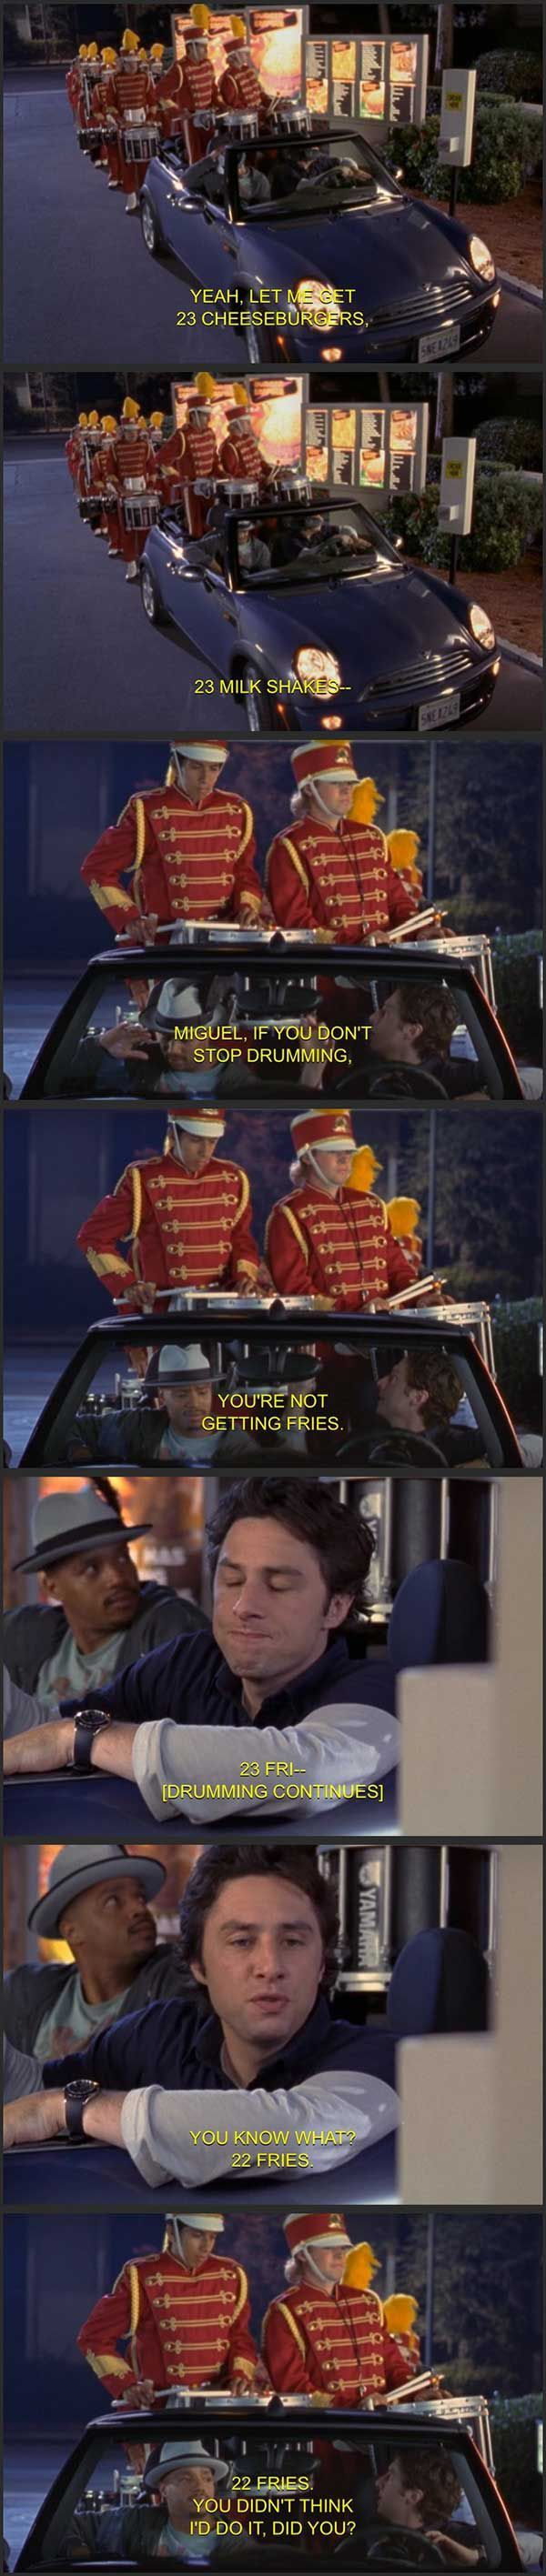 A reminder why Scrubs was one of the best TV shows ever...